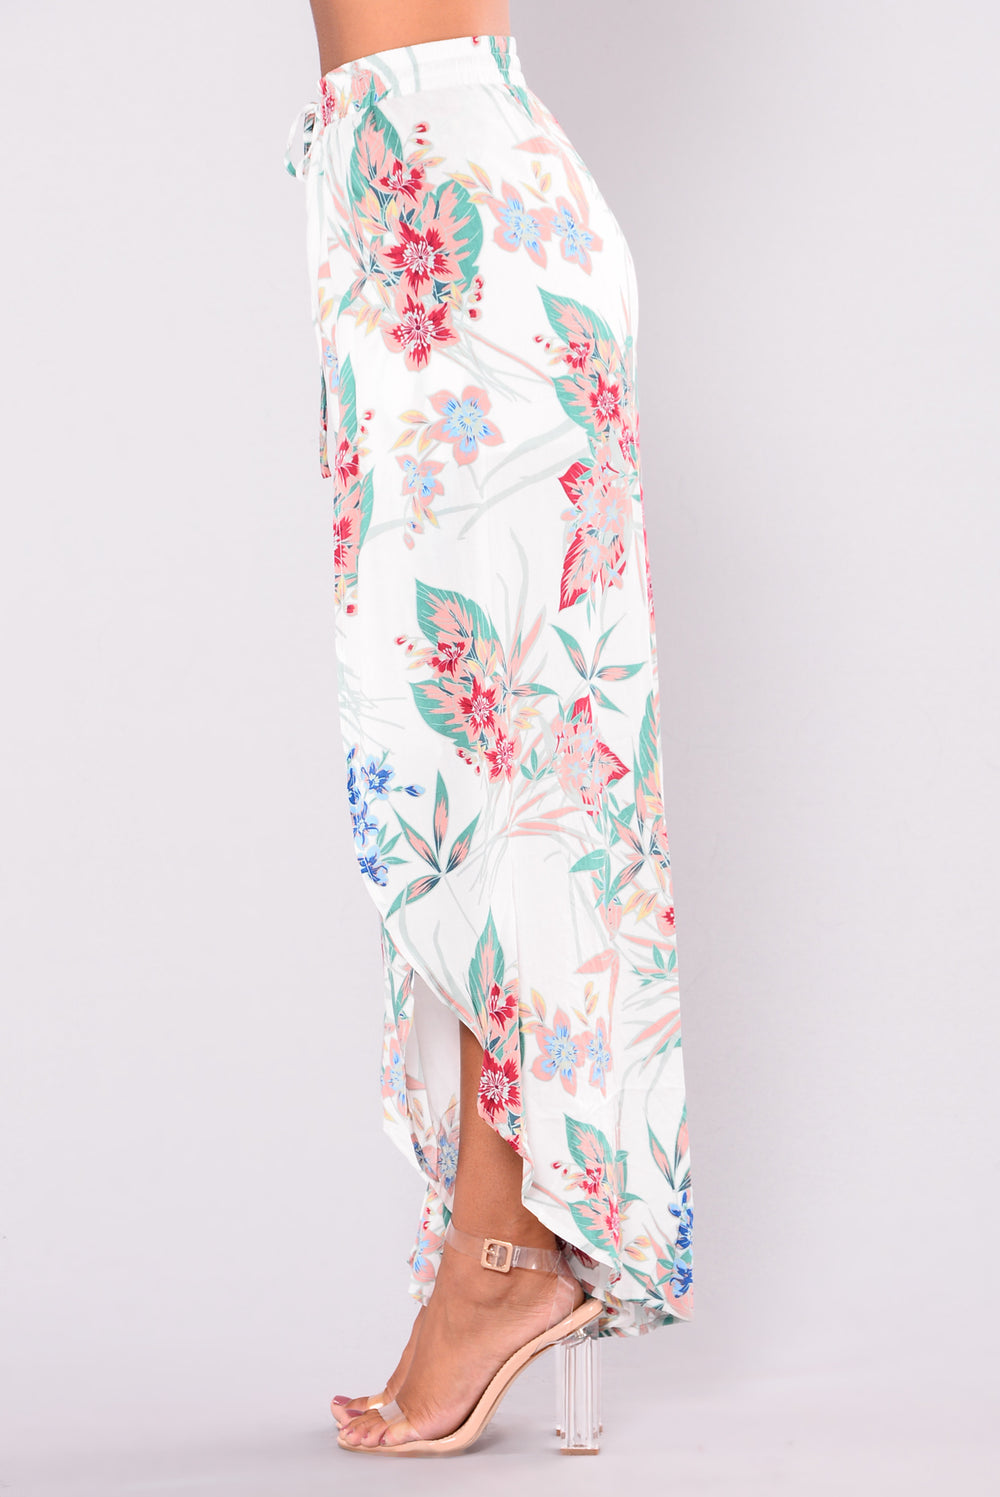 Forbidden Flower Printed Pants - Ivory Multi